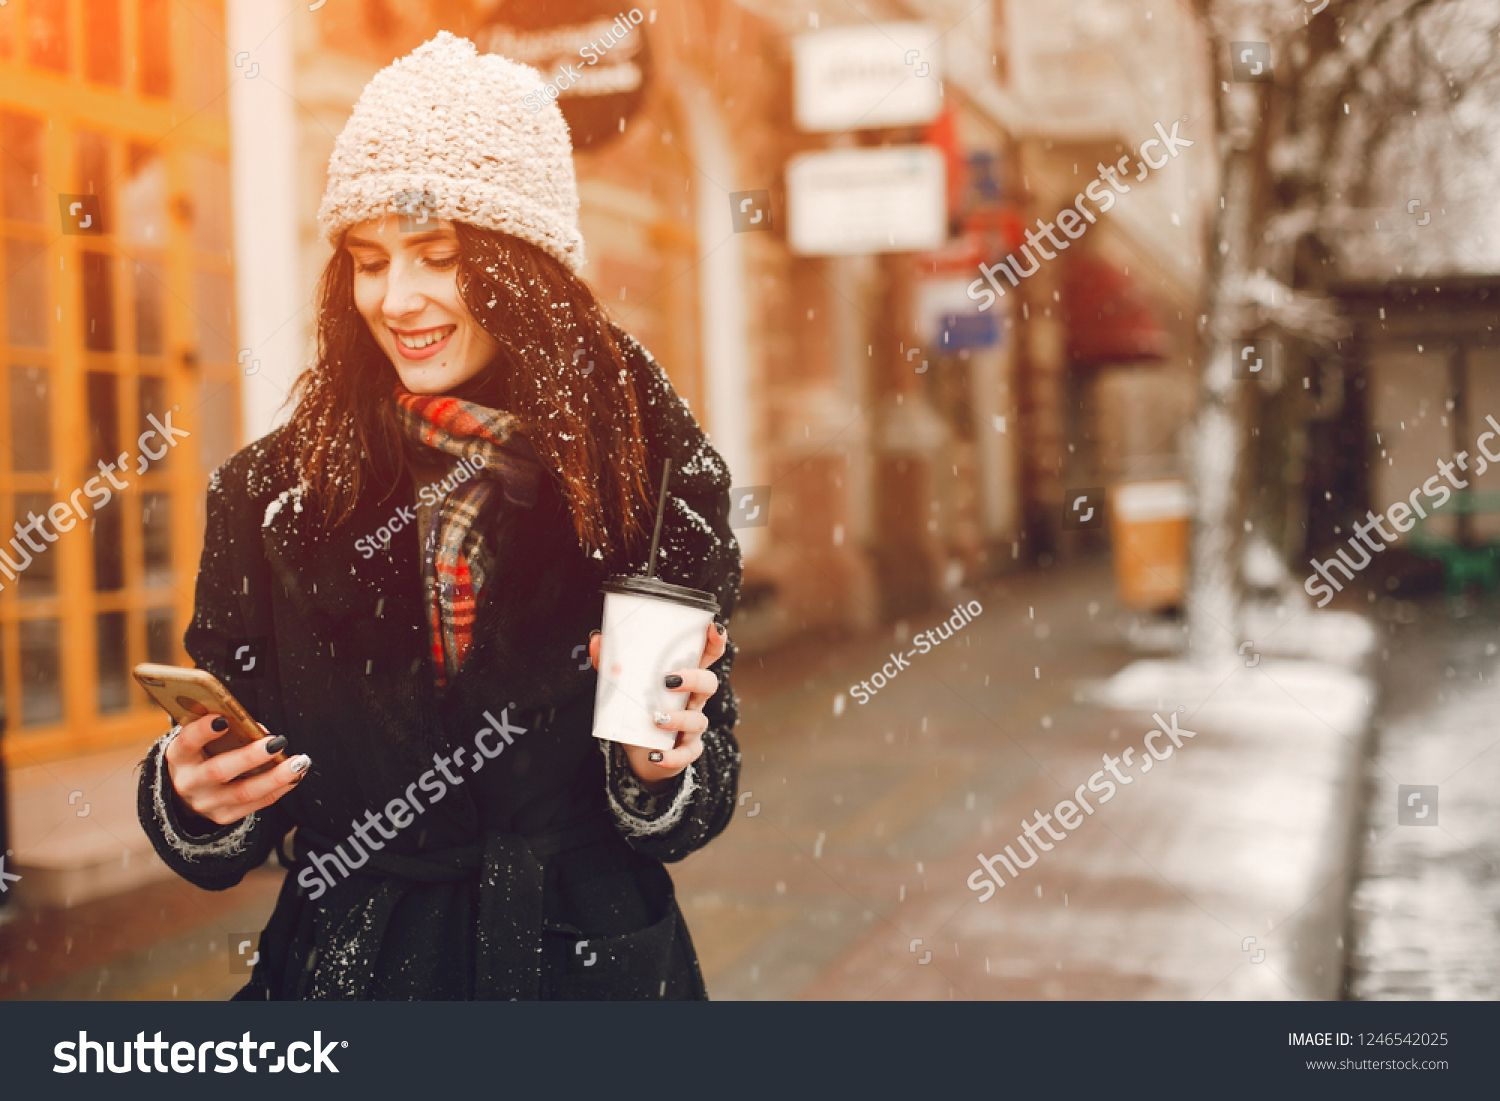 Young And Stylish Girl In Black Coat And White Hat Drinking Coffee